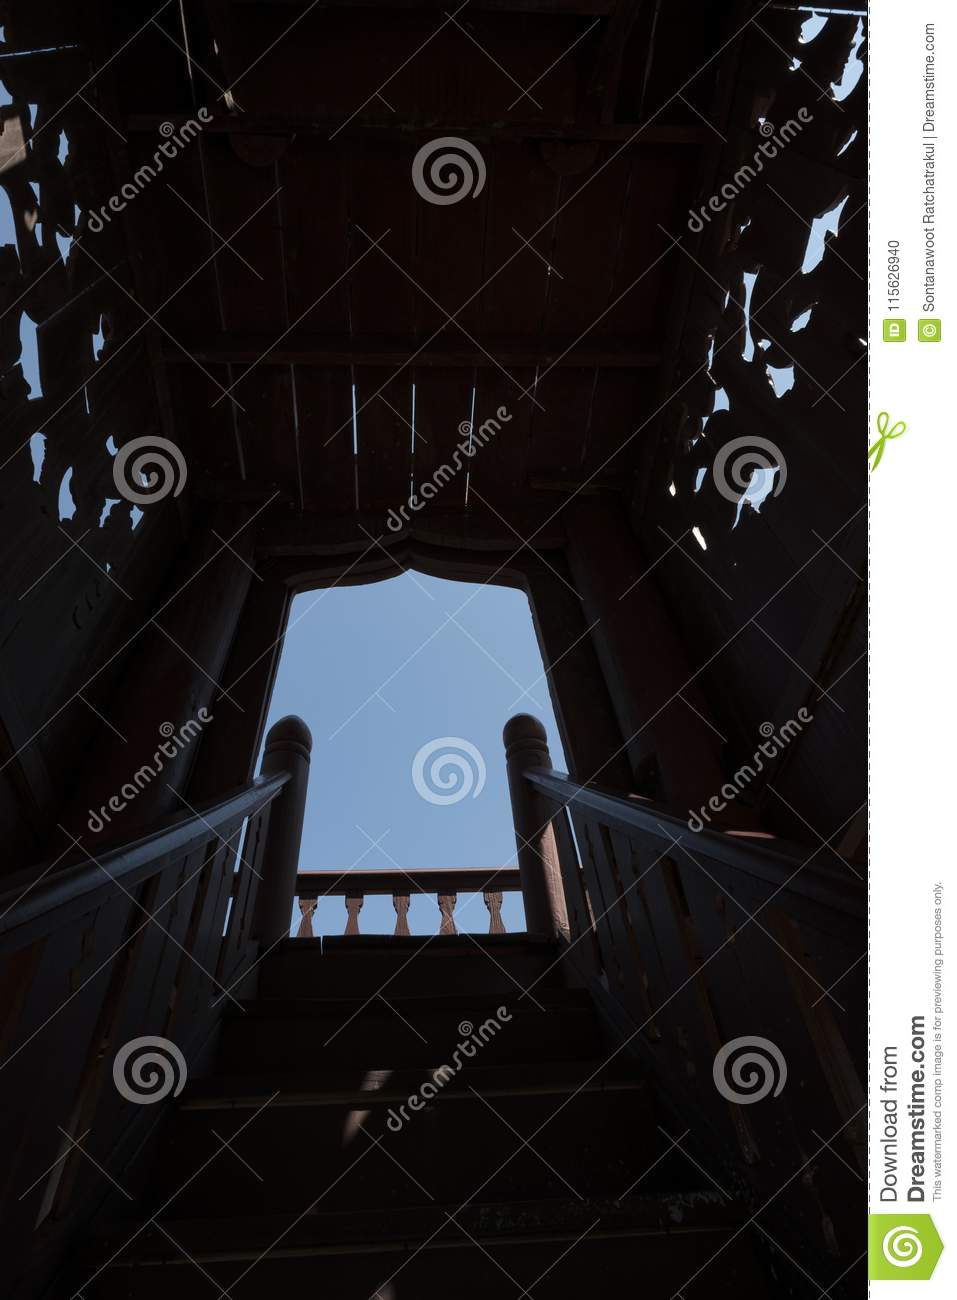 Dark stairs and walkway up to the sky. Wooden stair to step up to opening sky.